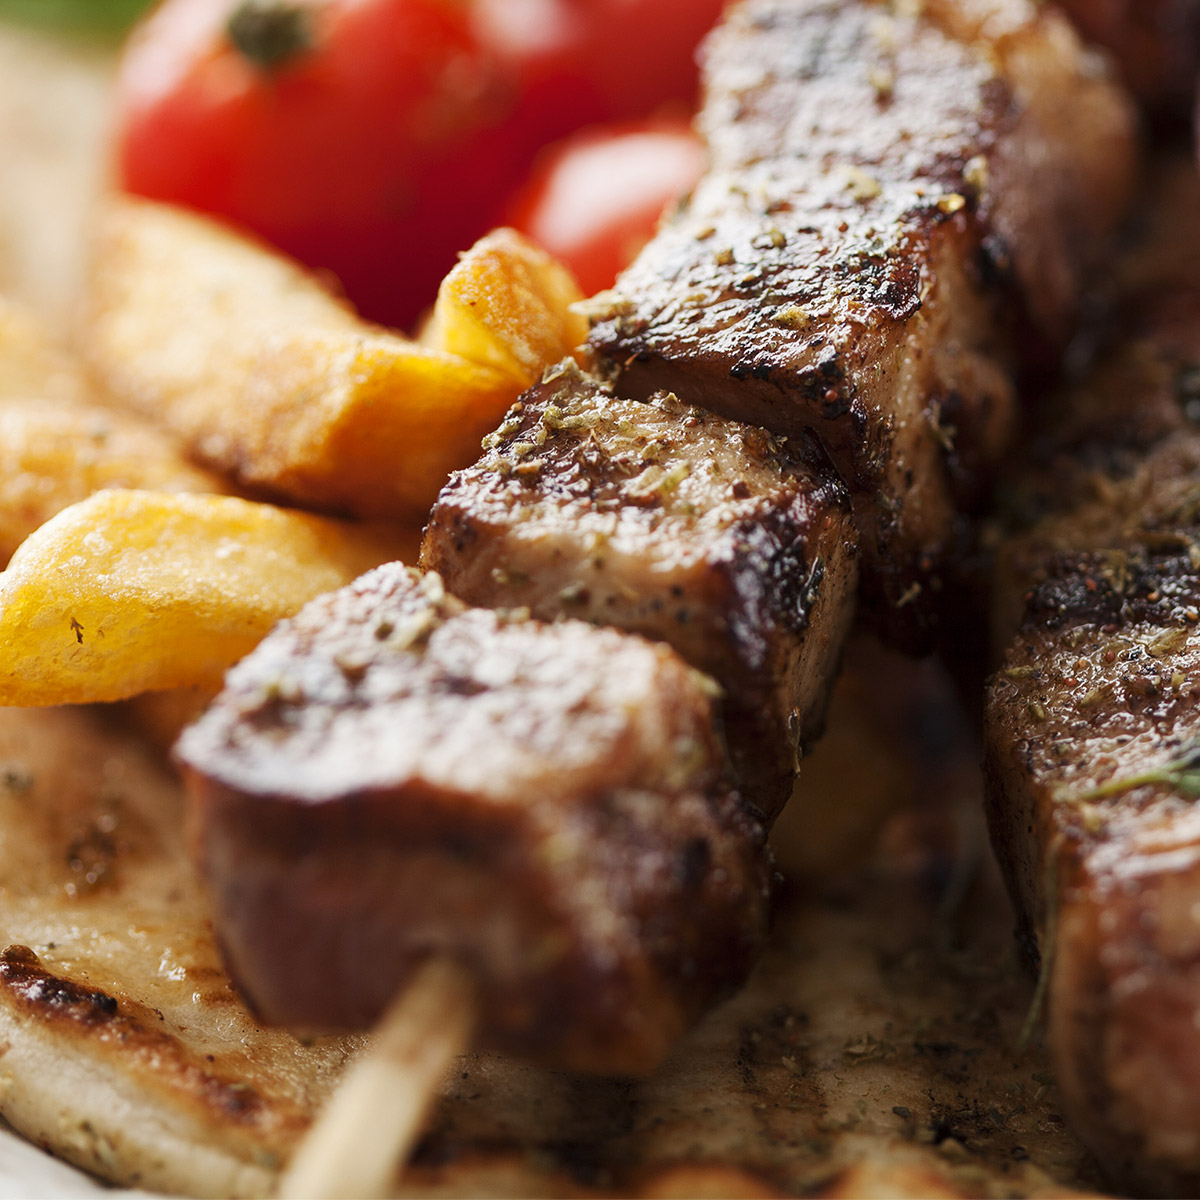 Duet Food suggestion - Souvlaki